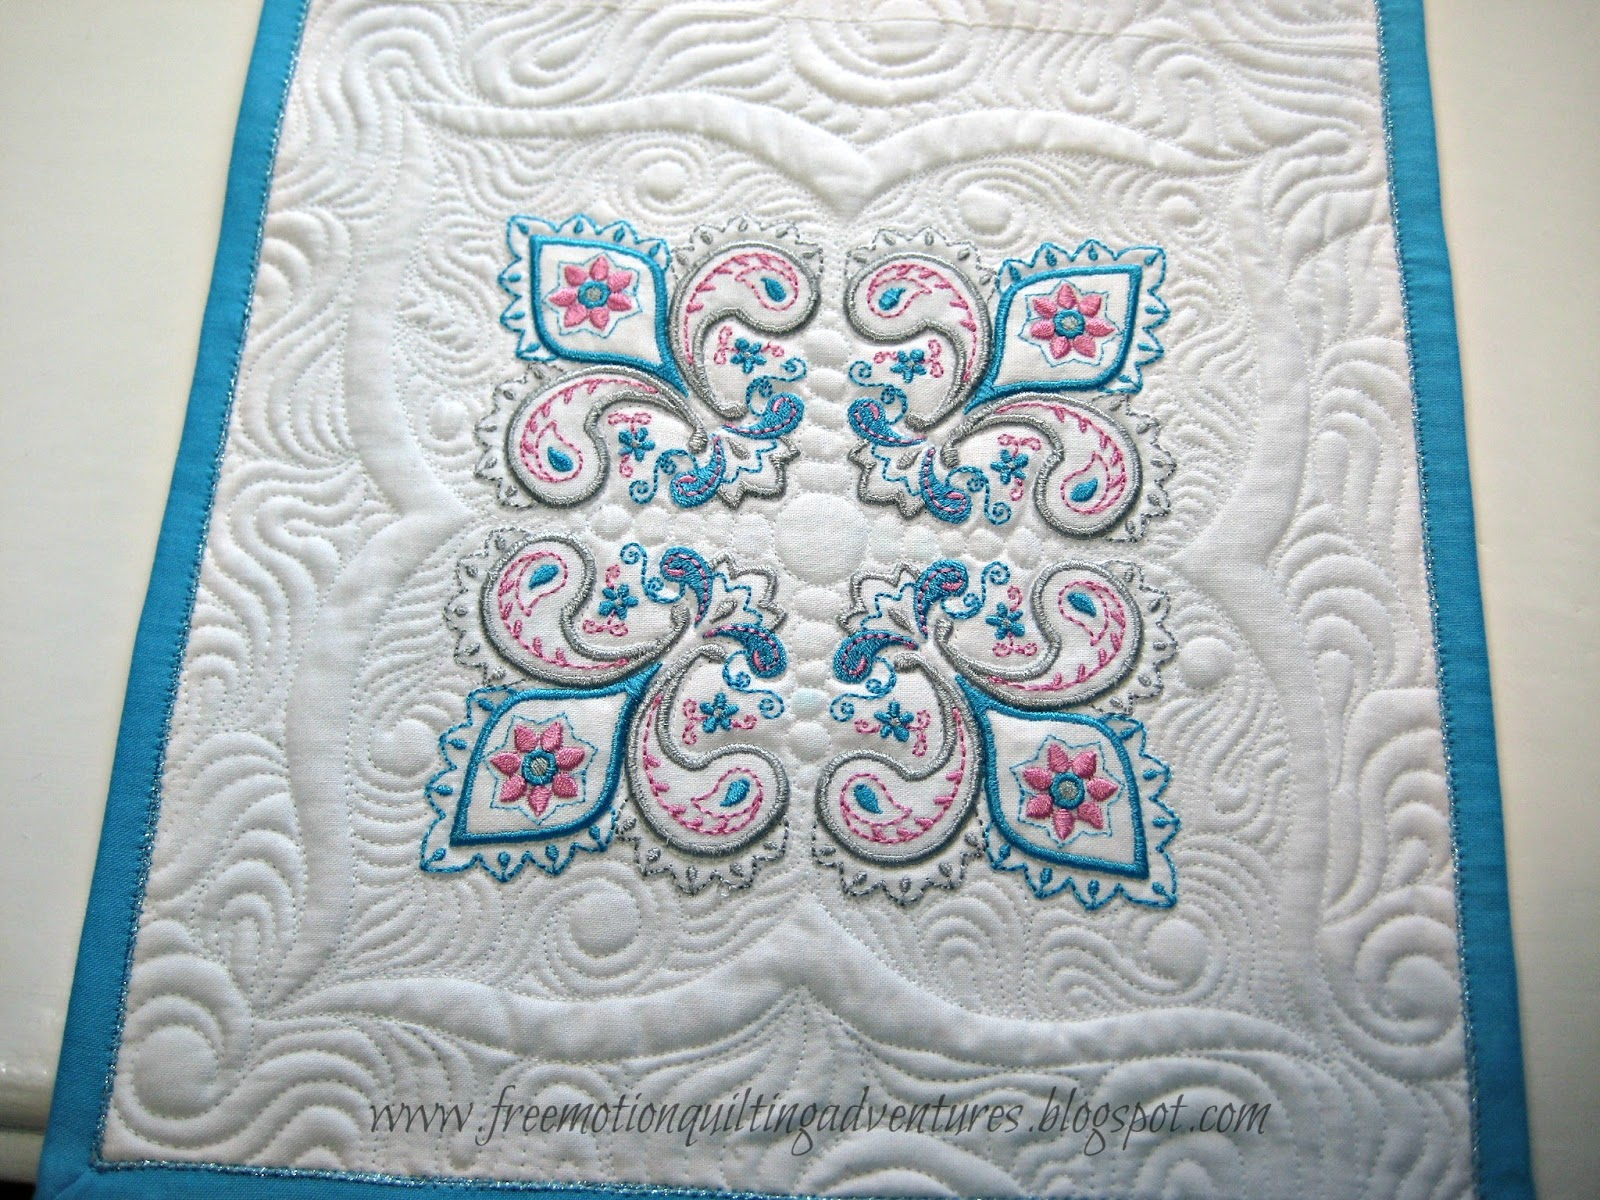 free motion quilting embroidered blocks